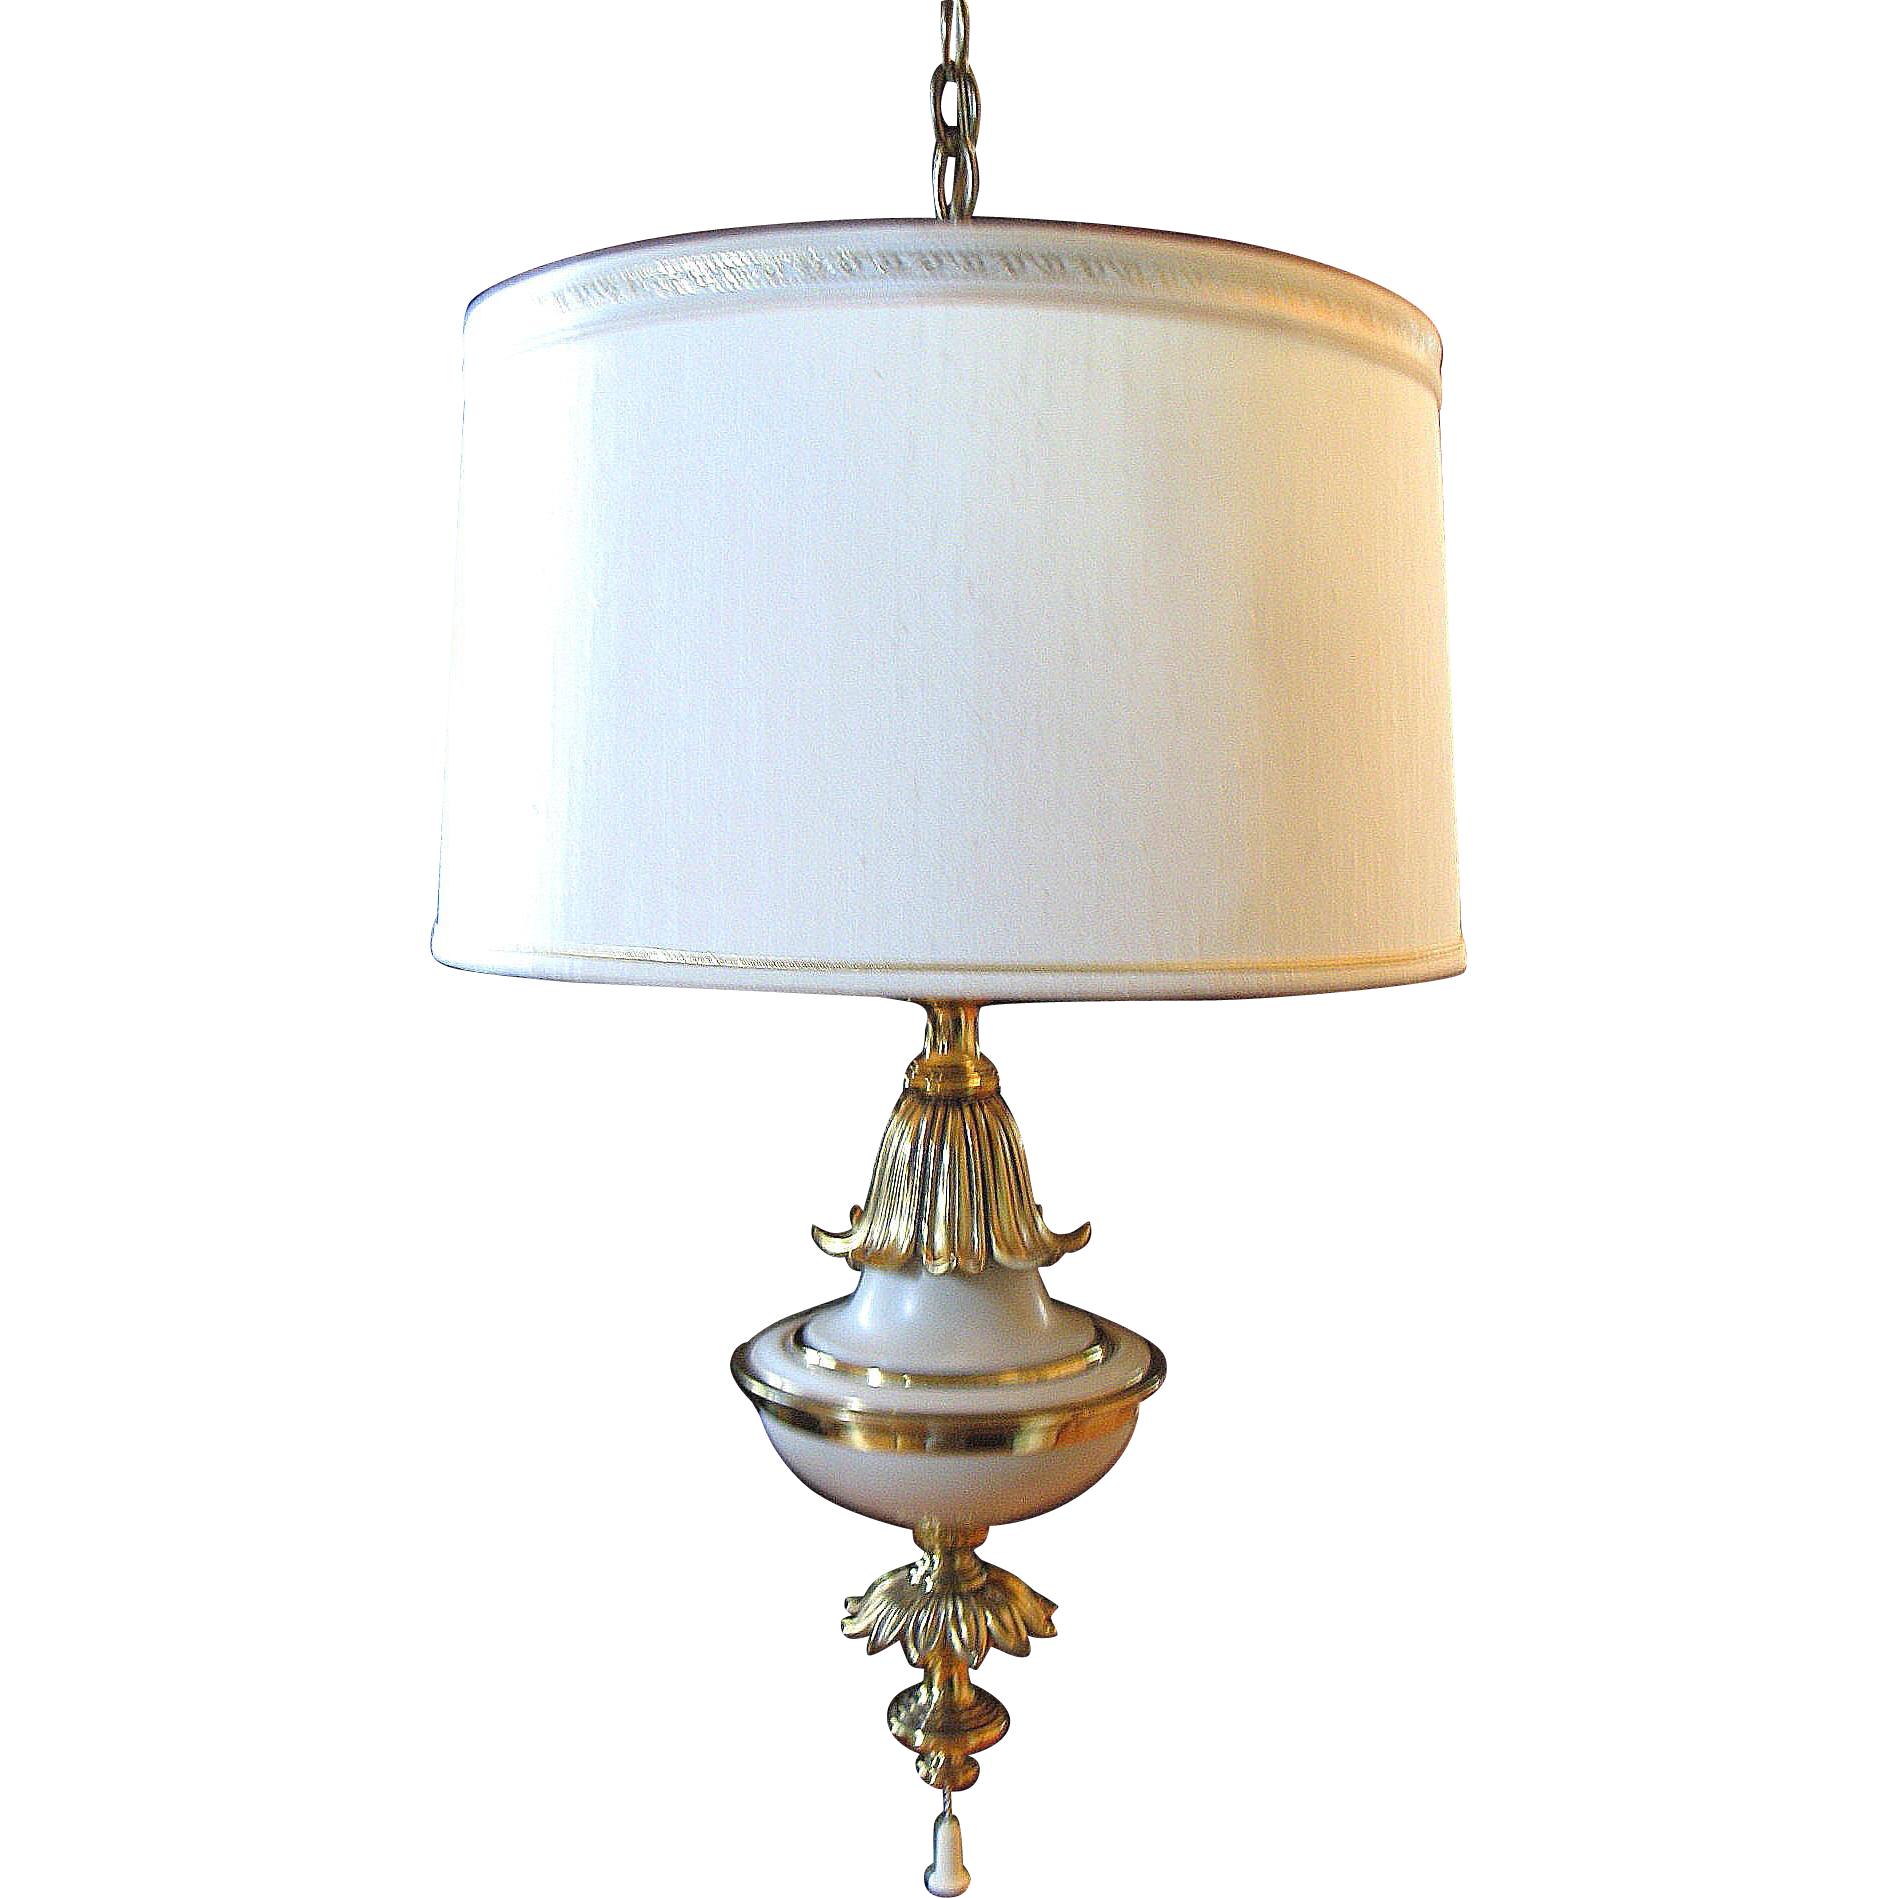 Brass Chandelier Ceiling Lights : Vintage stiffel ceiling lamp light fixture hollywood